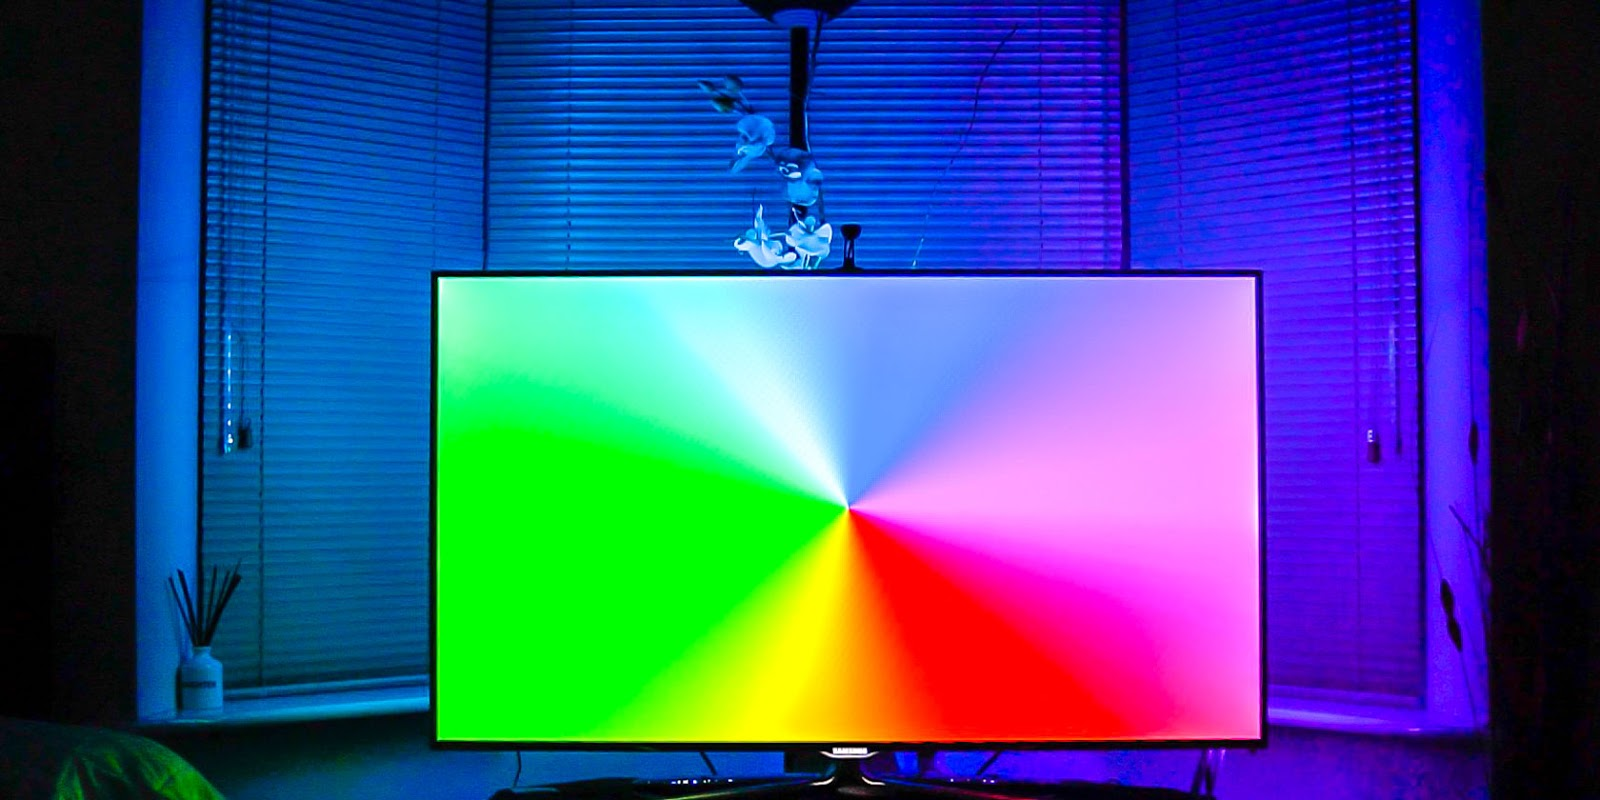 Ihoment Retrofit Tv Backlight Kit Giveaway Worldwide Free Stuff If Youre Looking To Take Your Video Or Gaming Experience Into The Next Level There Just Isnt Another System As Cost Effective Win It For